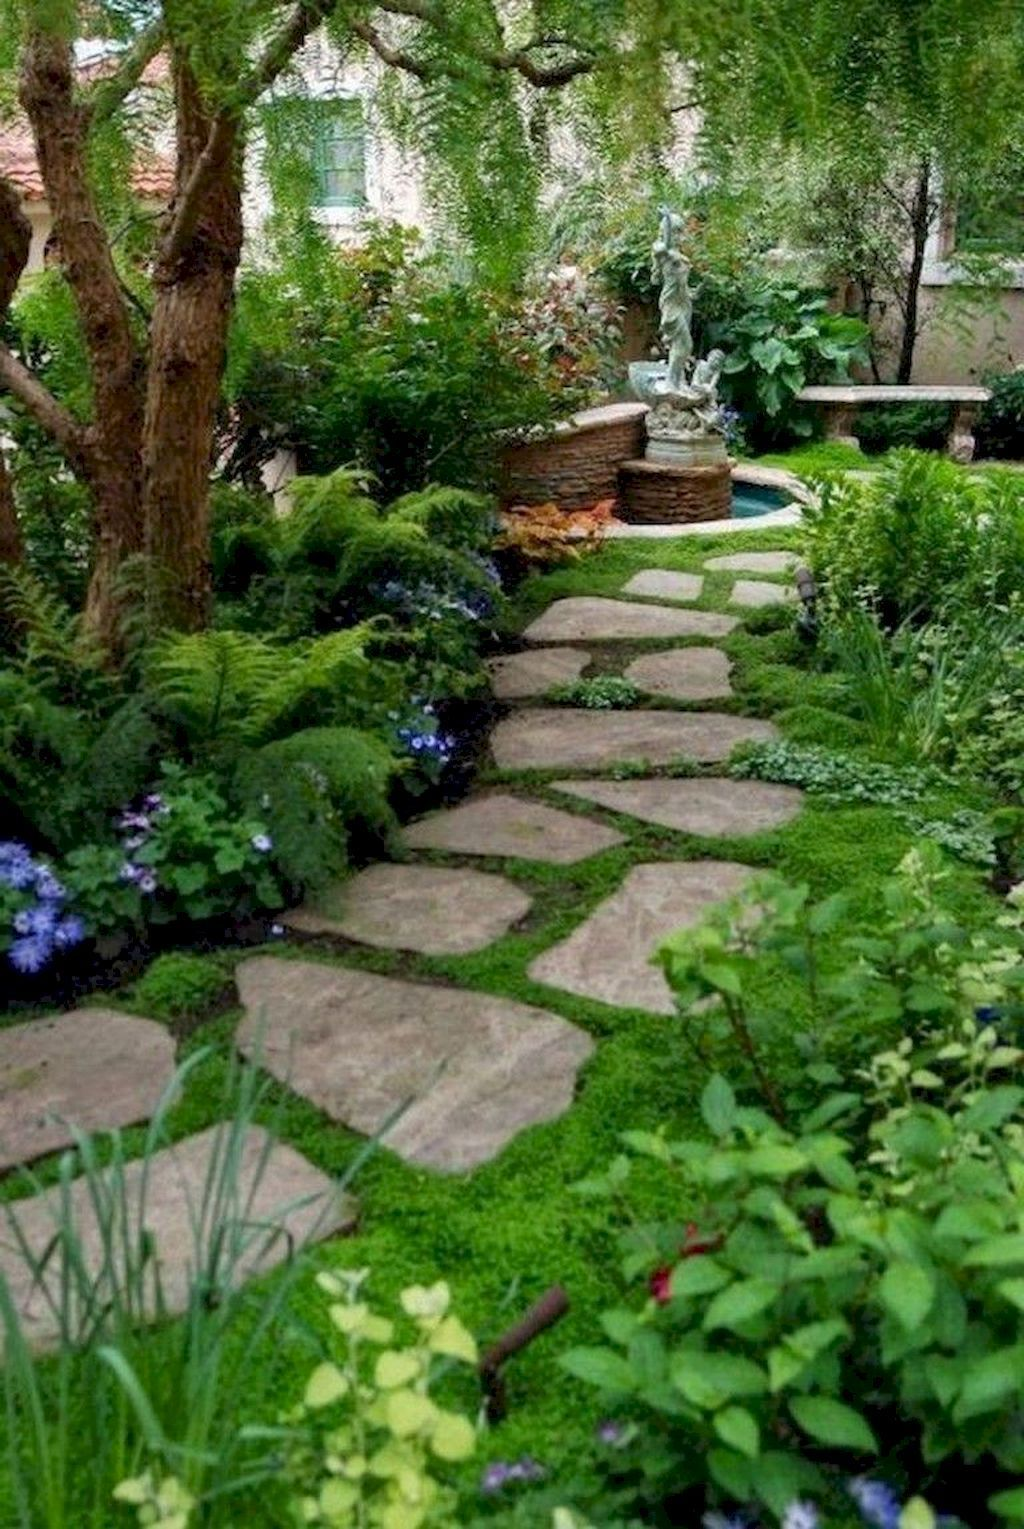 Natural Garden Walk Ways From Large Stones And Flagged Stones Part 29 Pathway Landscaping Backyard Garden Design Front Garden Design